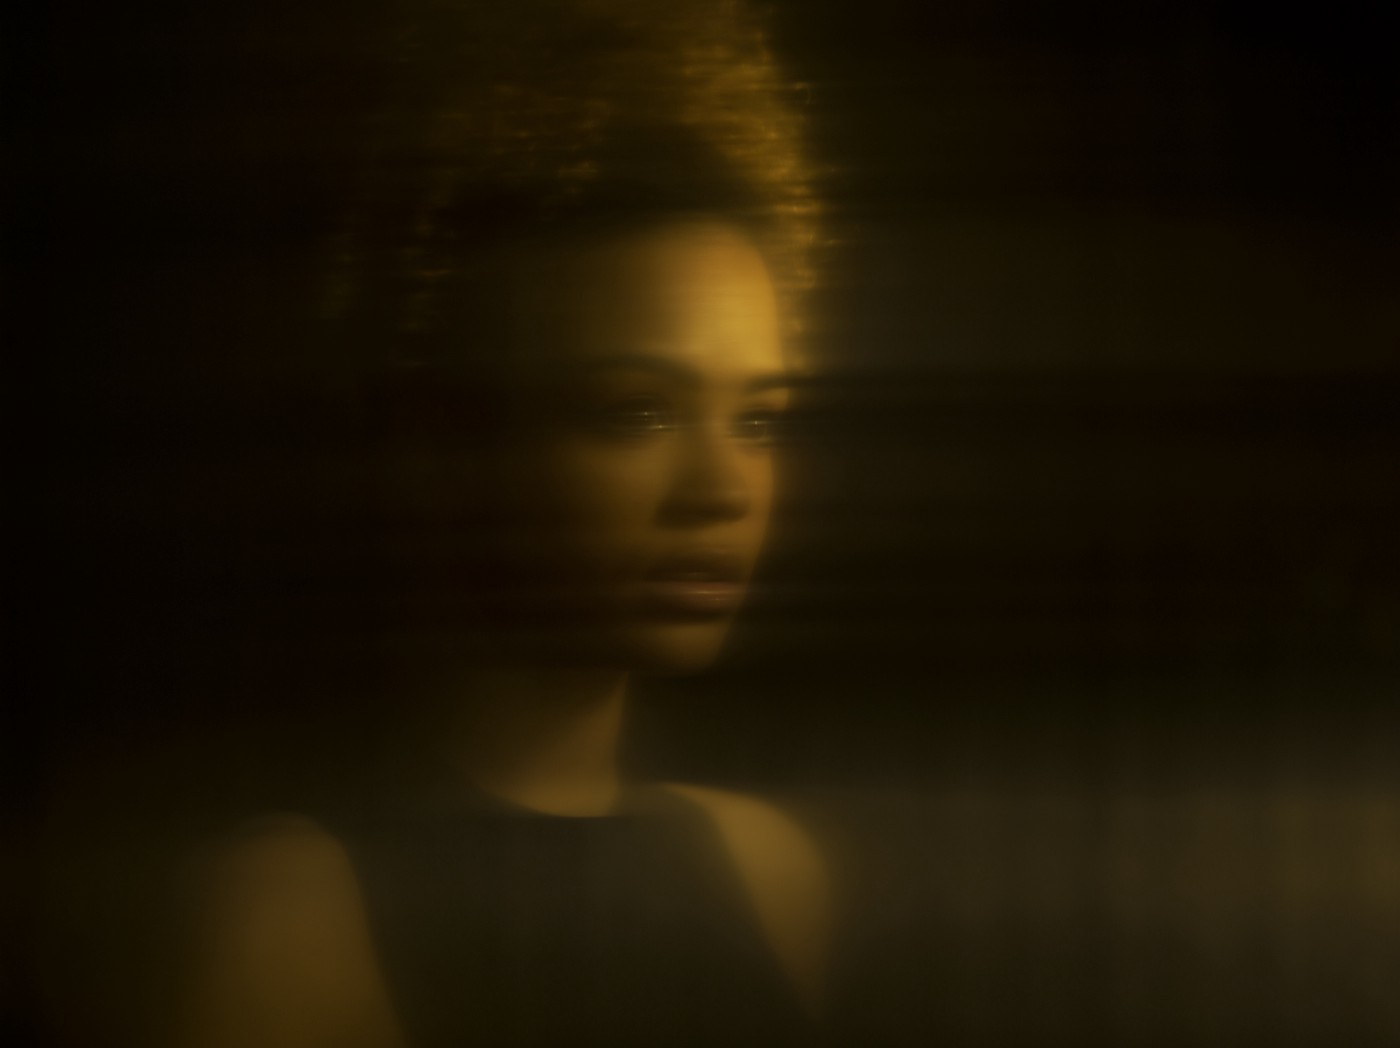 Distorted gold-tinted reflection of a young Black woman.